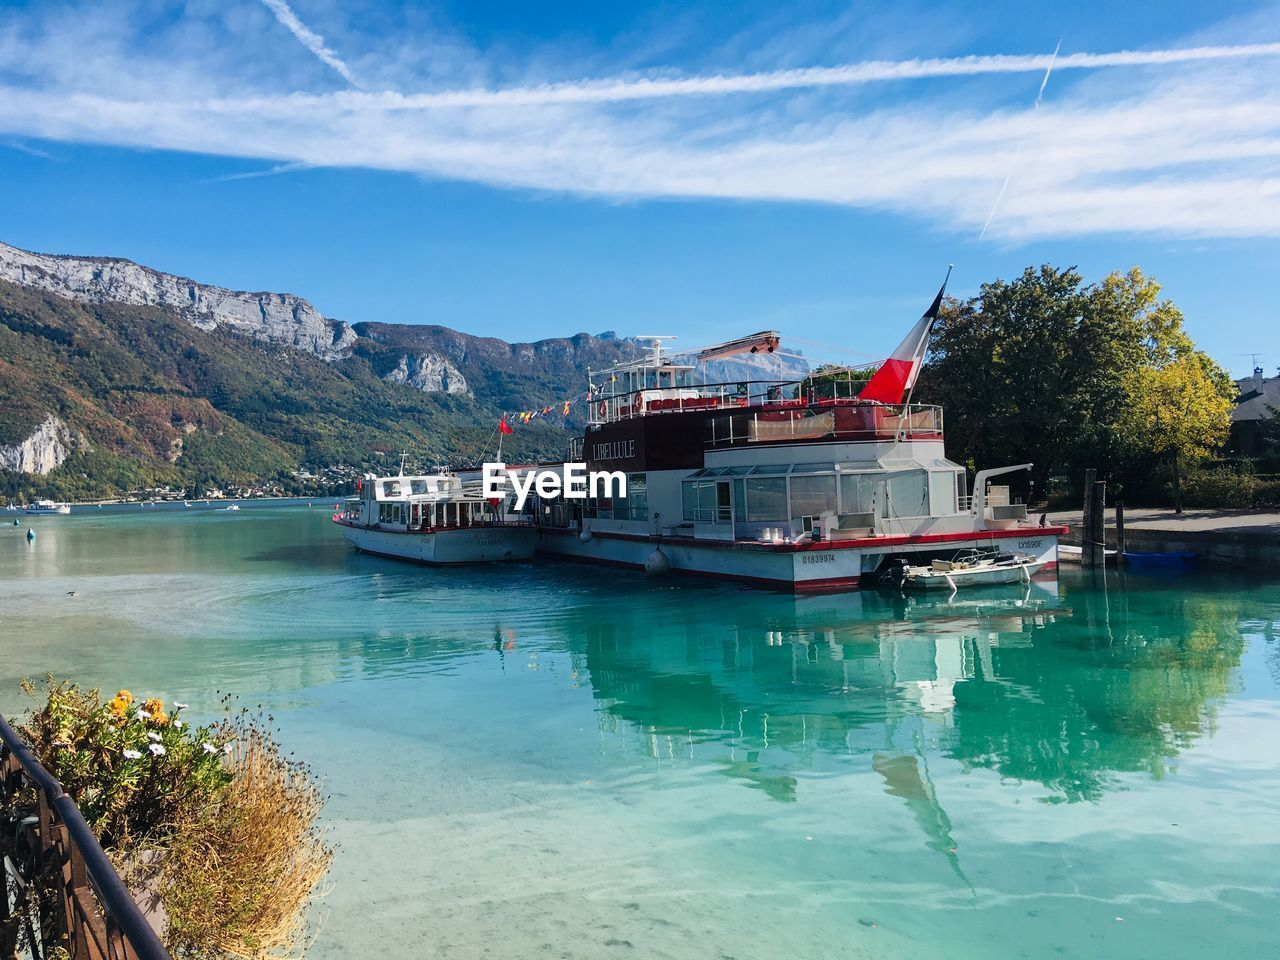 water, nautical vessel, mode of transportation, sky, transportation, cloud - sky, nature, mountain, day, no people, ship, reflection, waterfront, beauty in nature, moored, sea, outdoors, architecture, plant, passenger craft, cruise ship